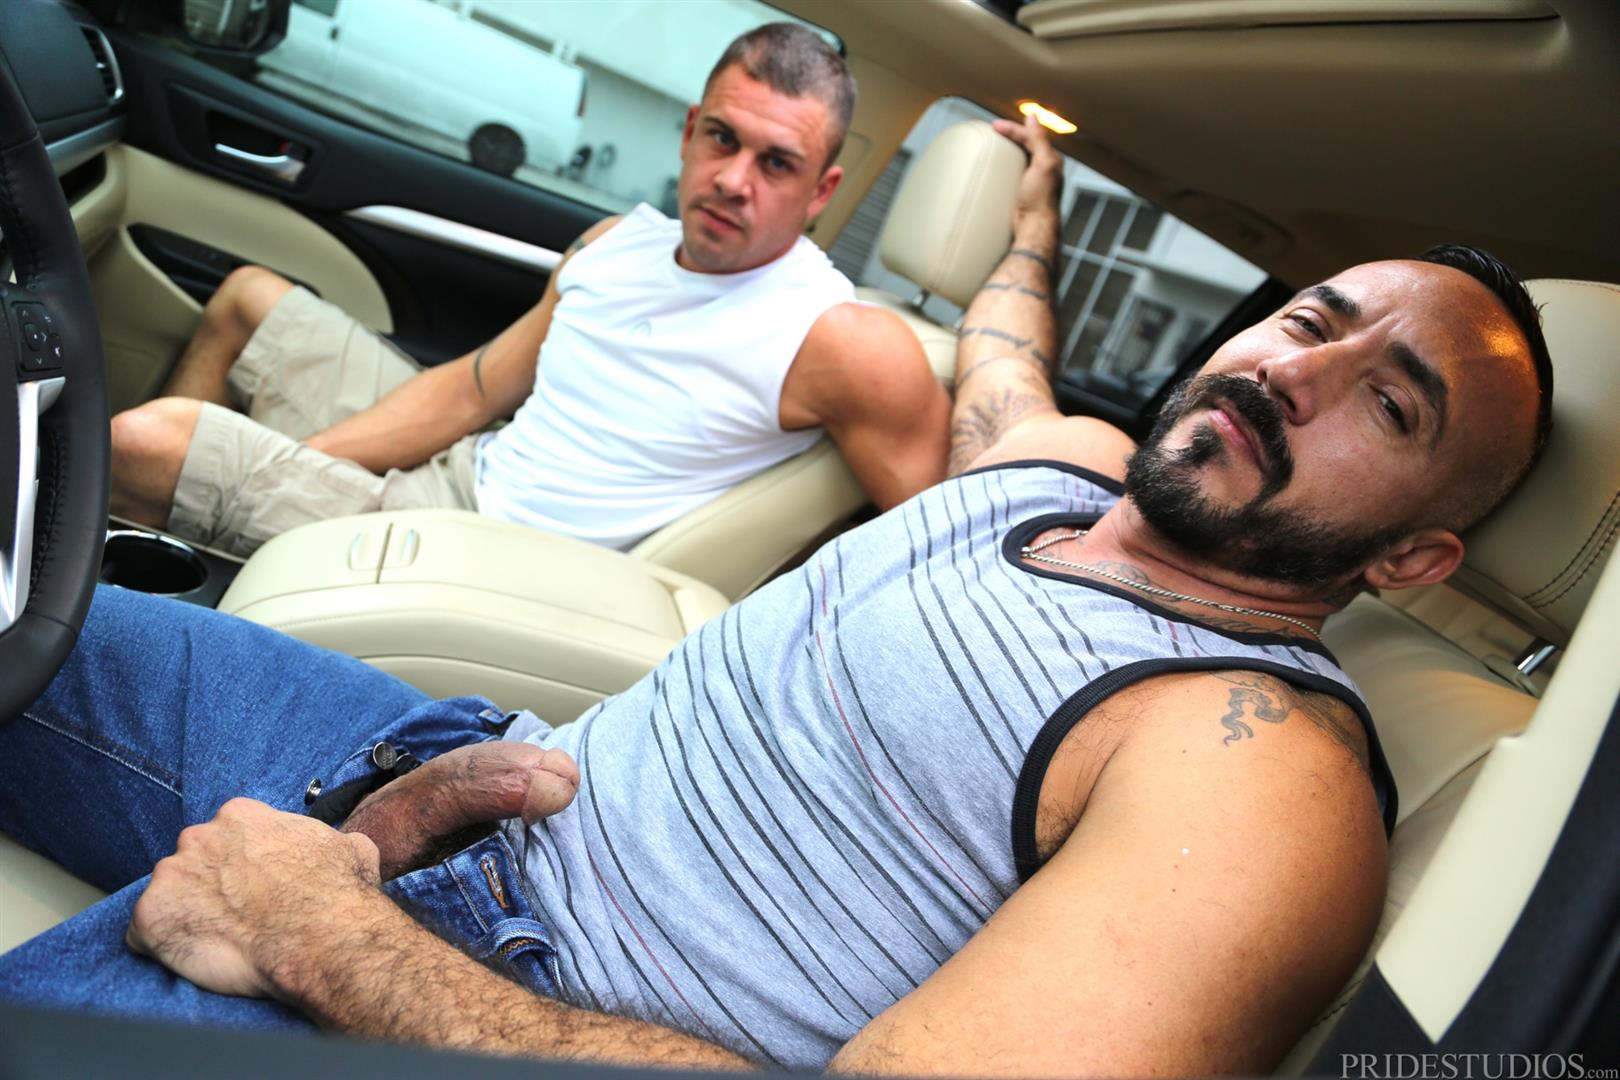 Men-Over-30-Darin-Silvers-and-Alessio-Romero-Hitchhiker-Fucking-Hairy-Ass-Amateur-Gay-Porn-02 Alessio Romero Picks Up A Hitchhiker And Gets Fucked In The Ass